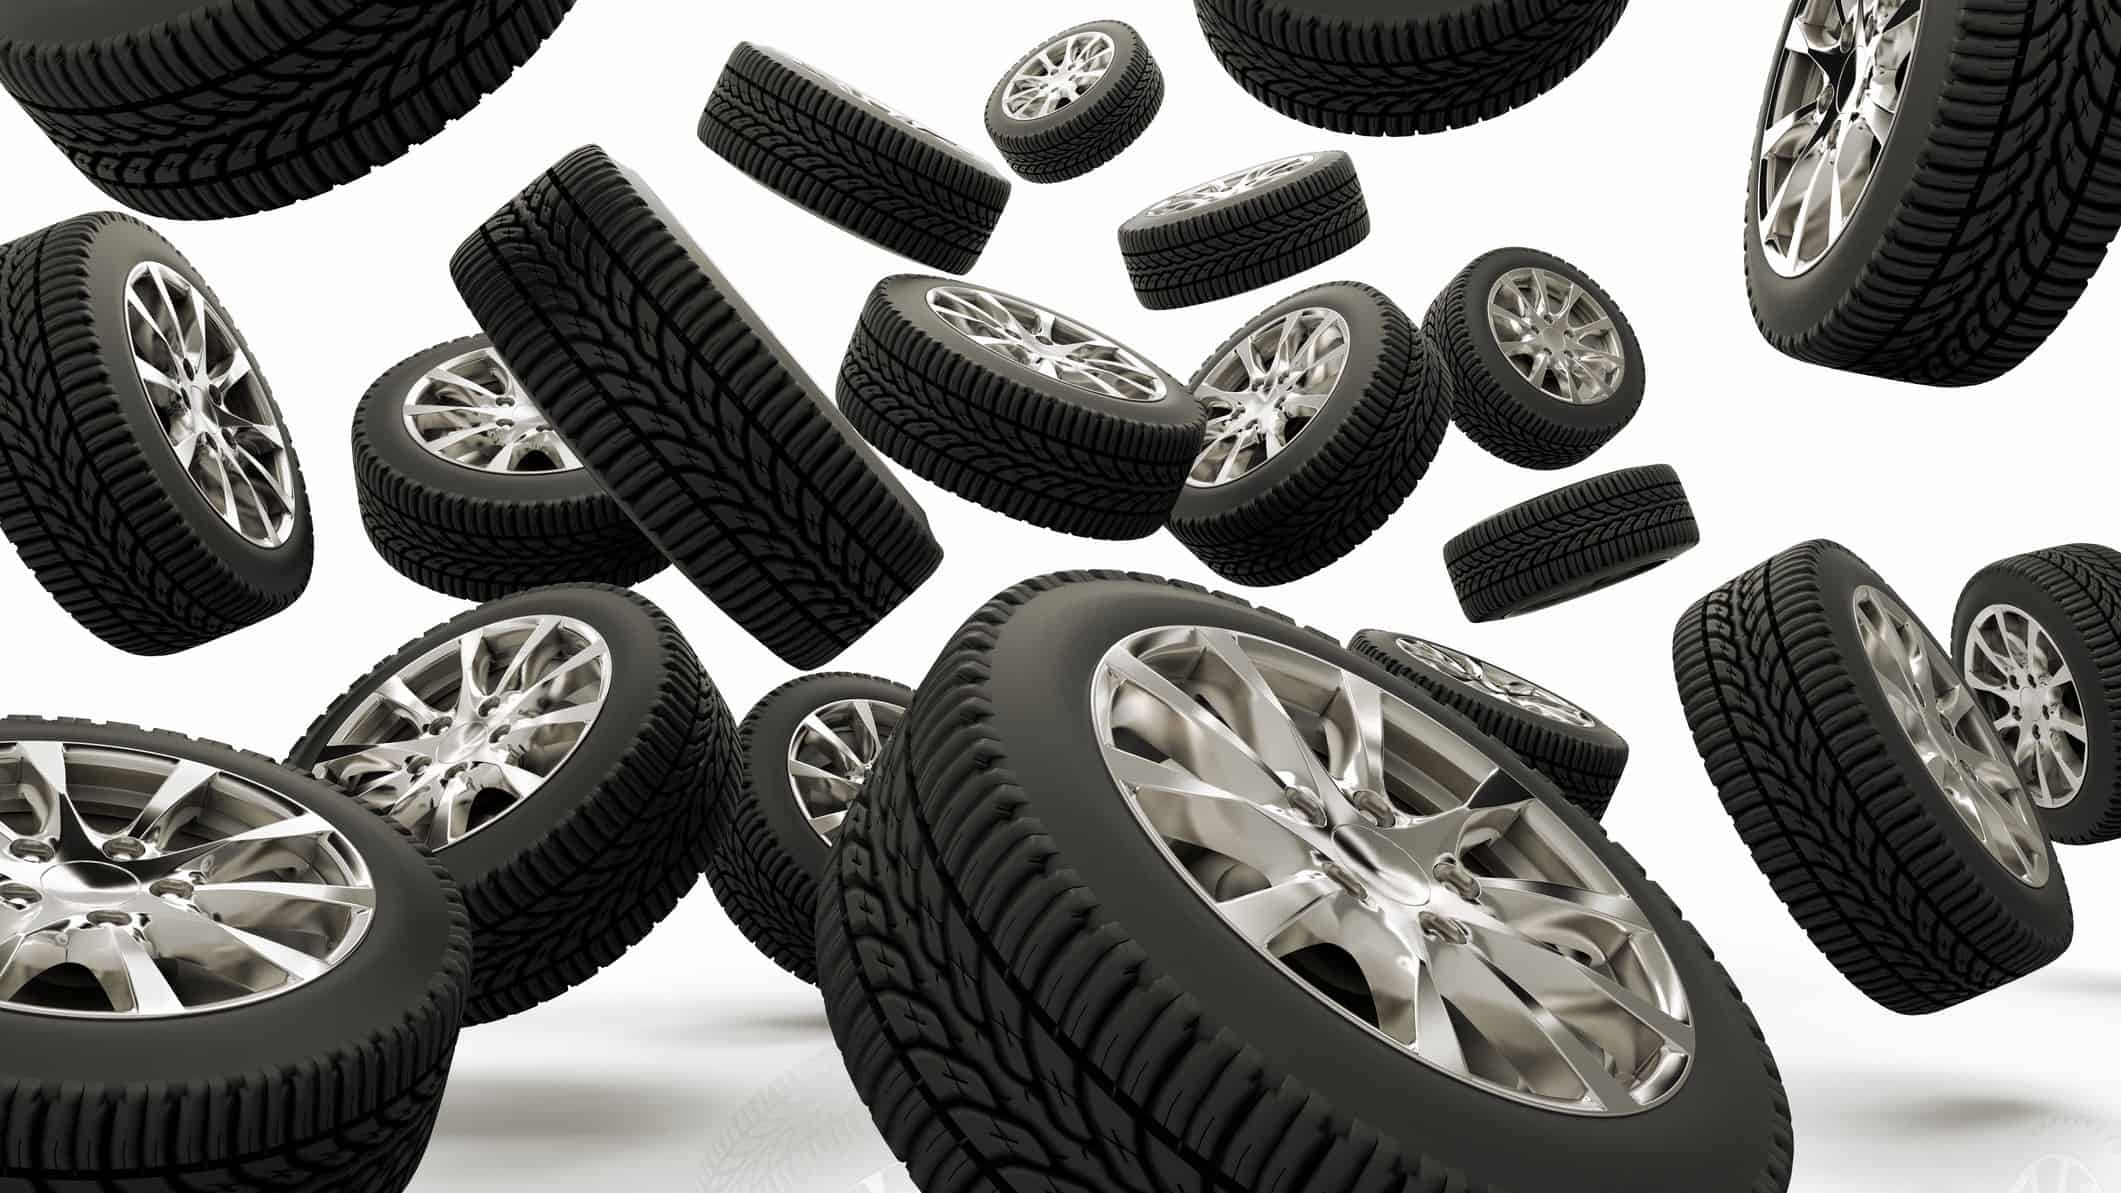 tyres and wheels bouncing about, indicating a positive share price